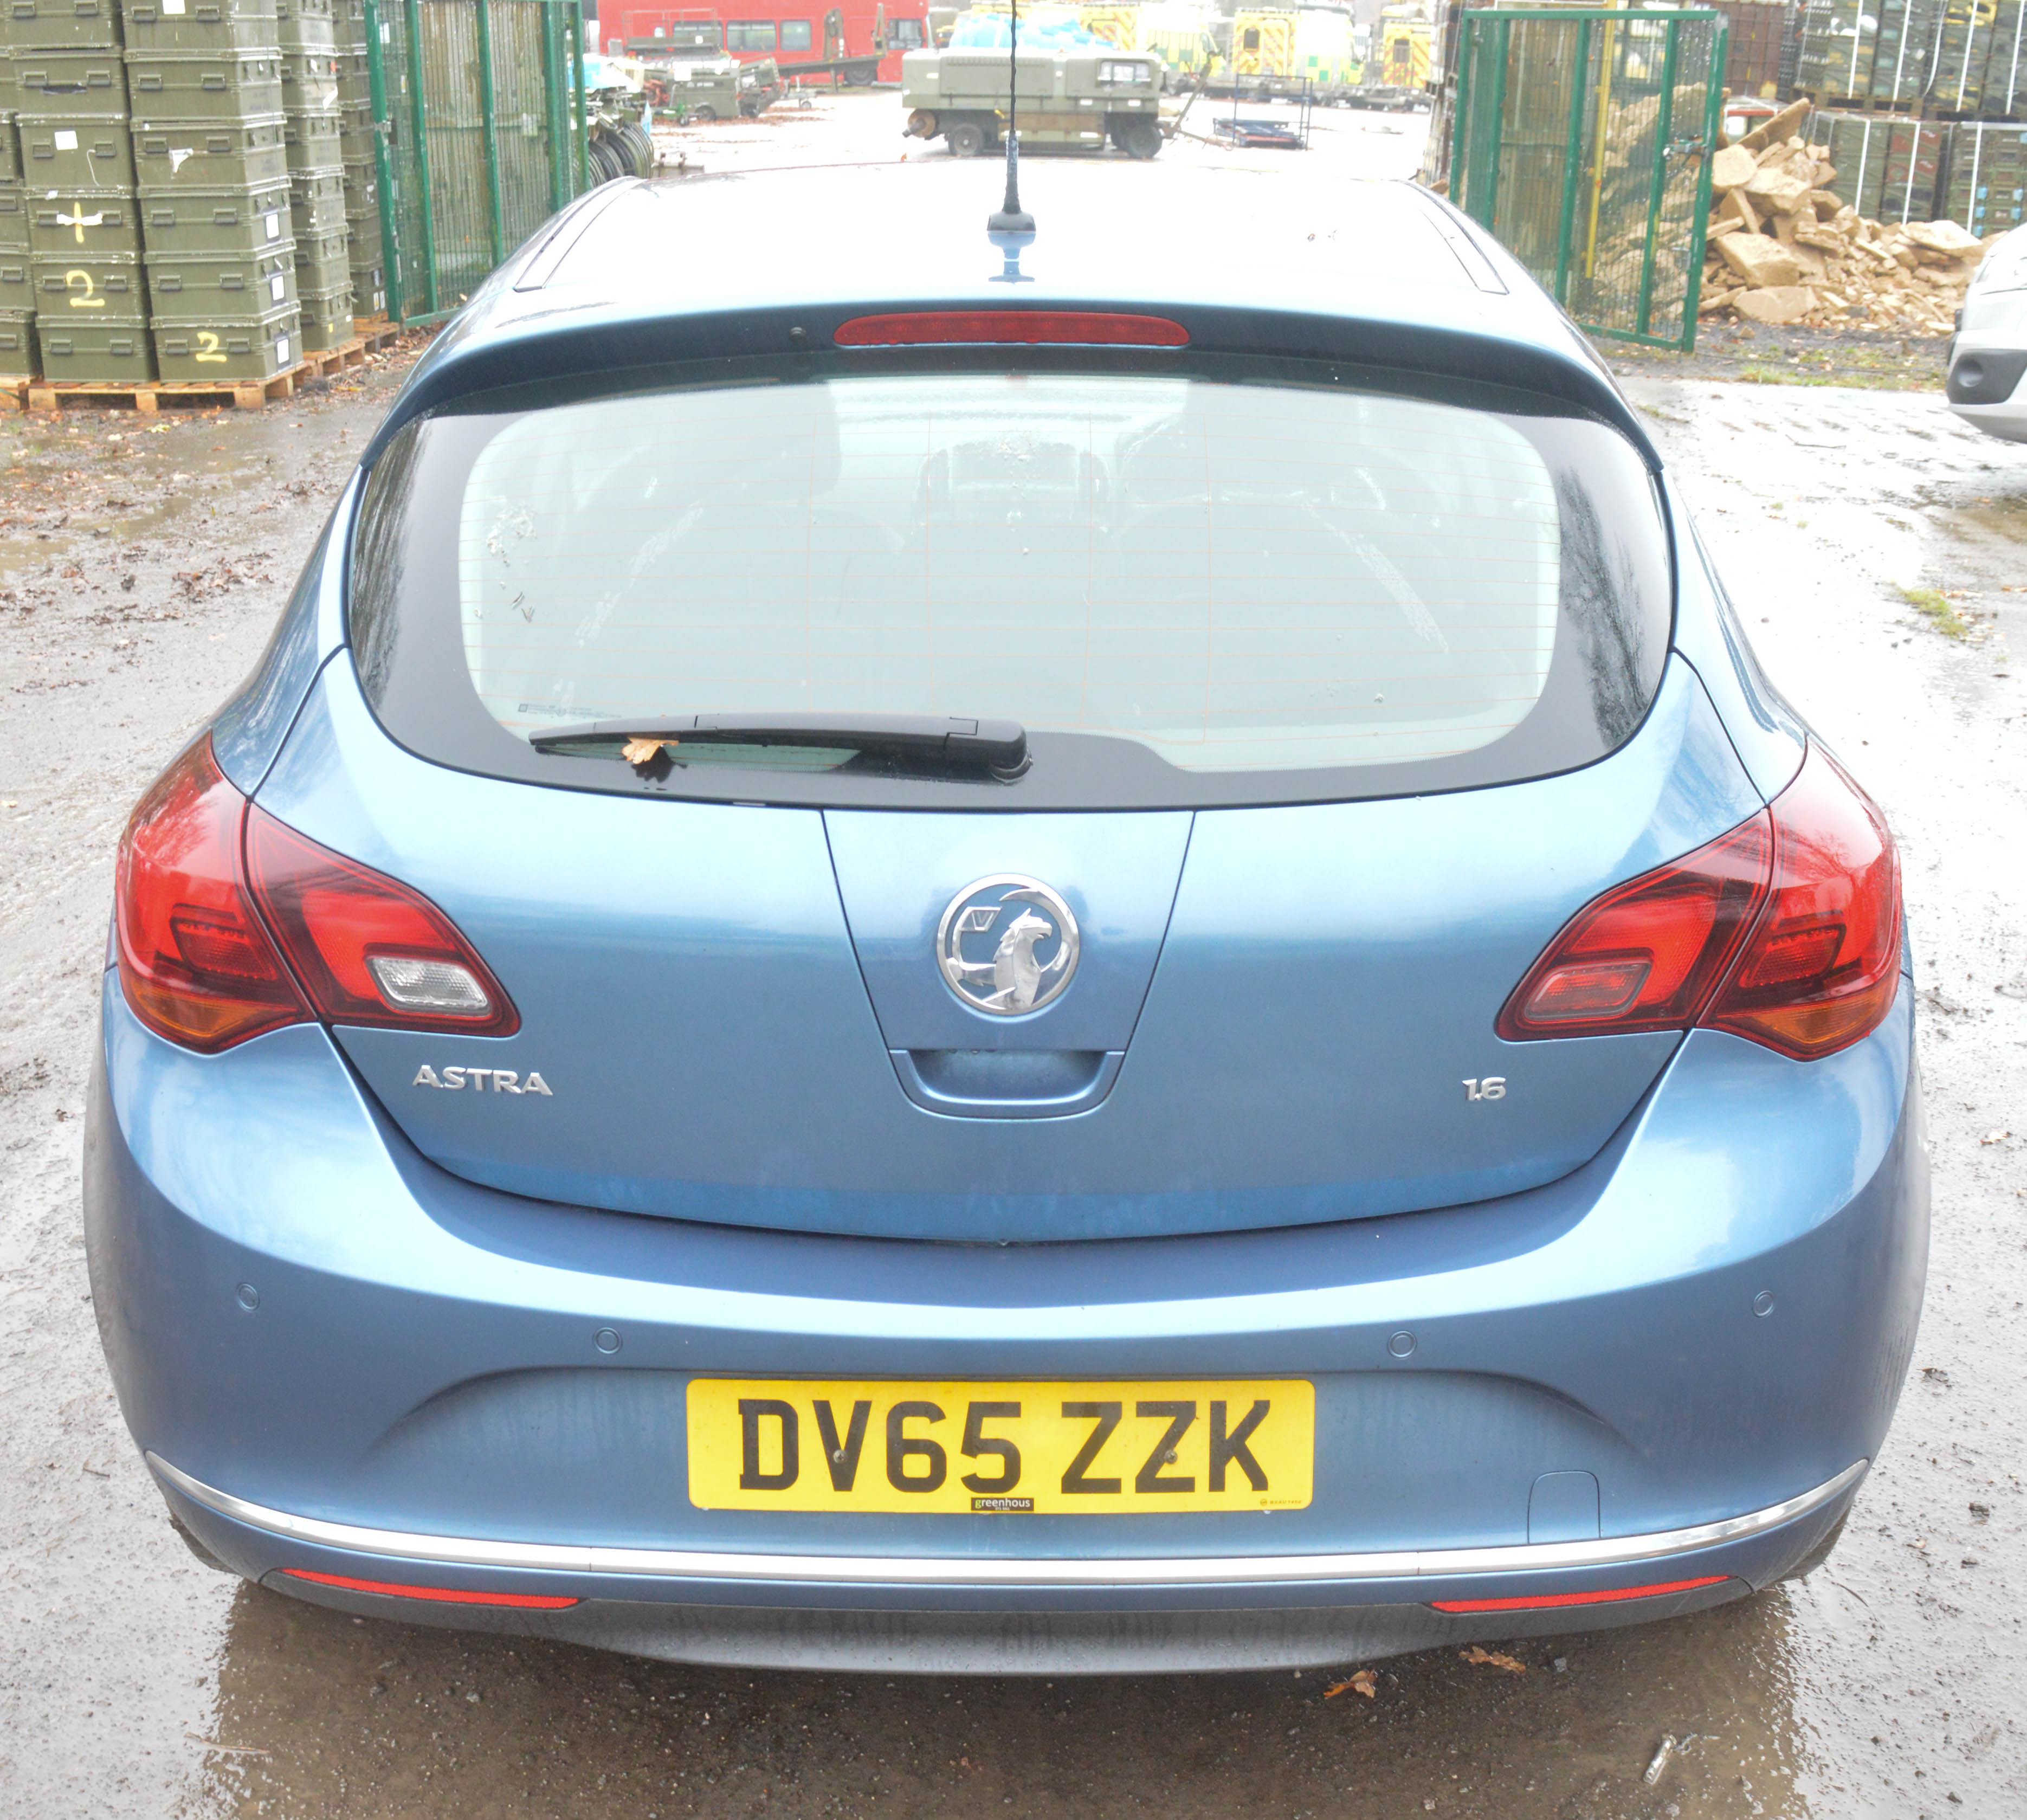 Vauxhall Astra 1.6i VVT 16v Elite 5 Door Hatchback Car